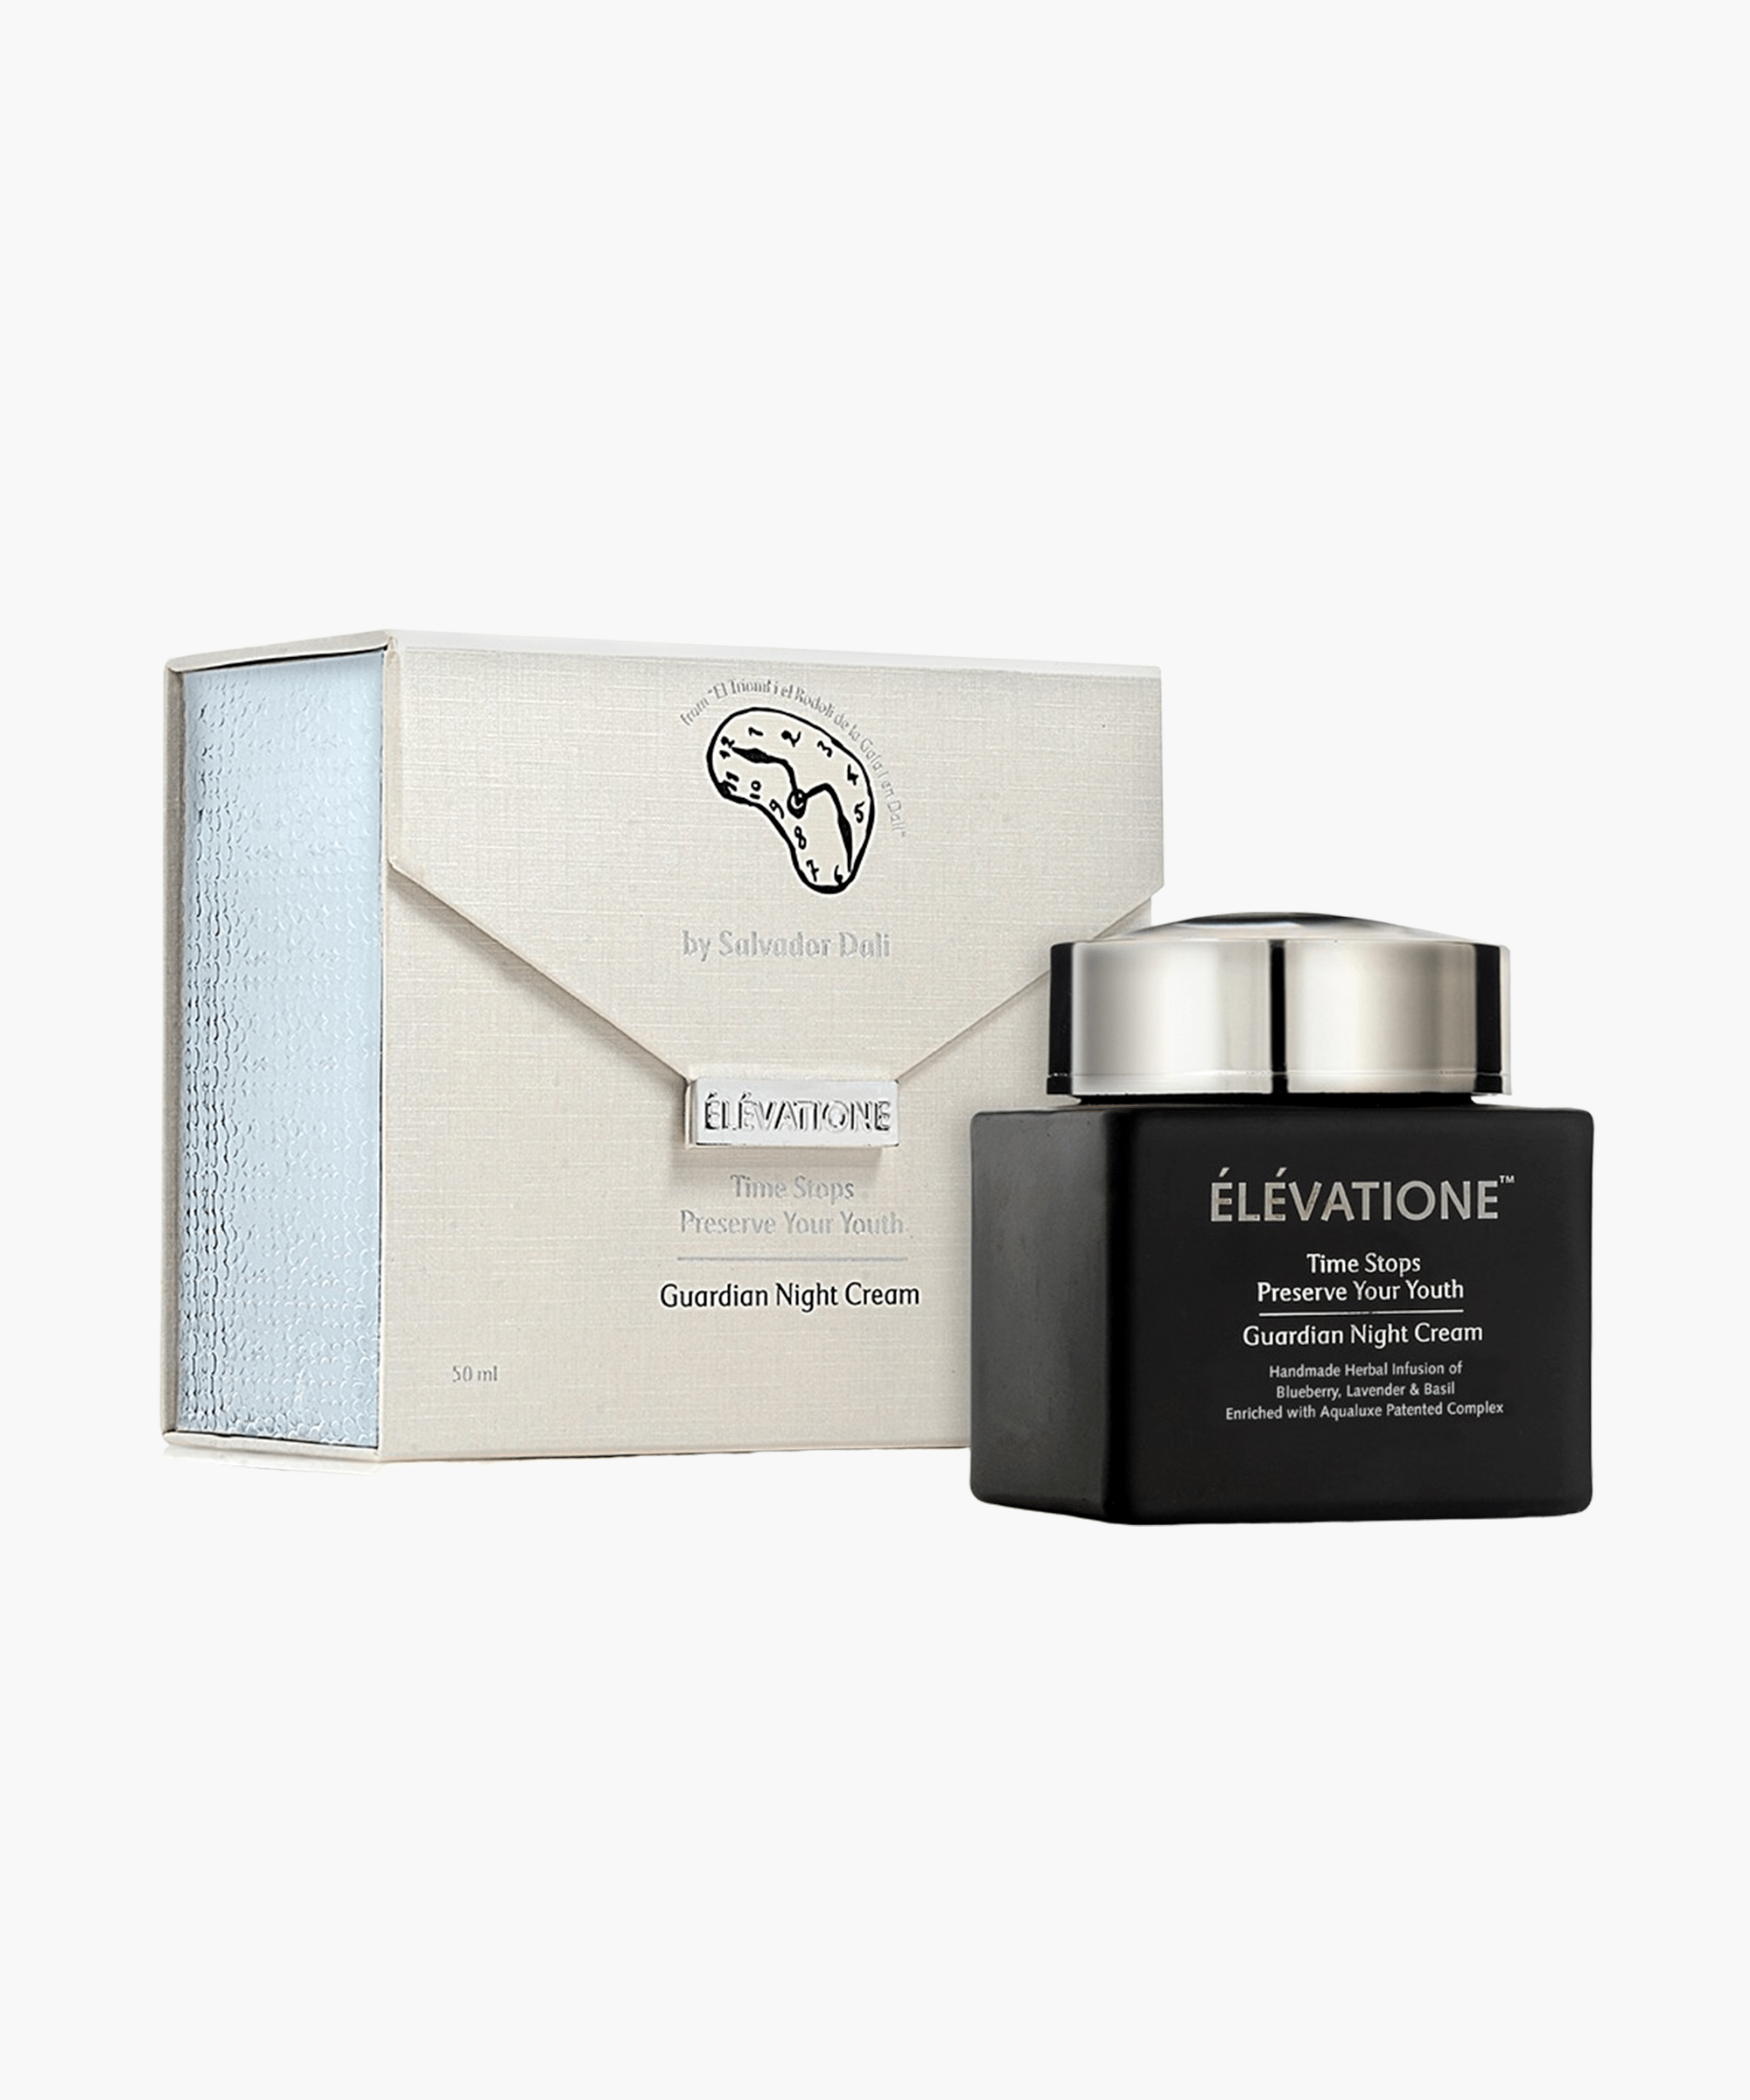 Guardian Night Cream